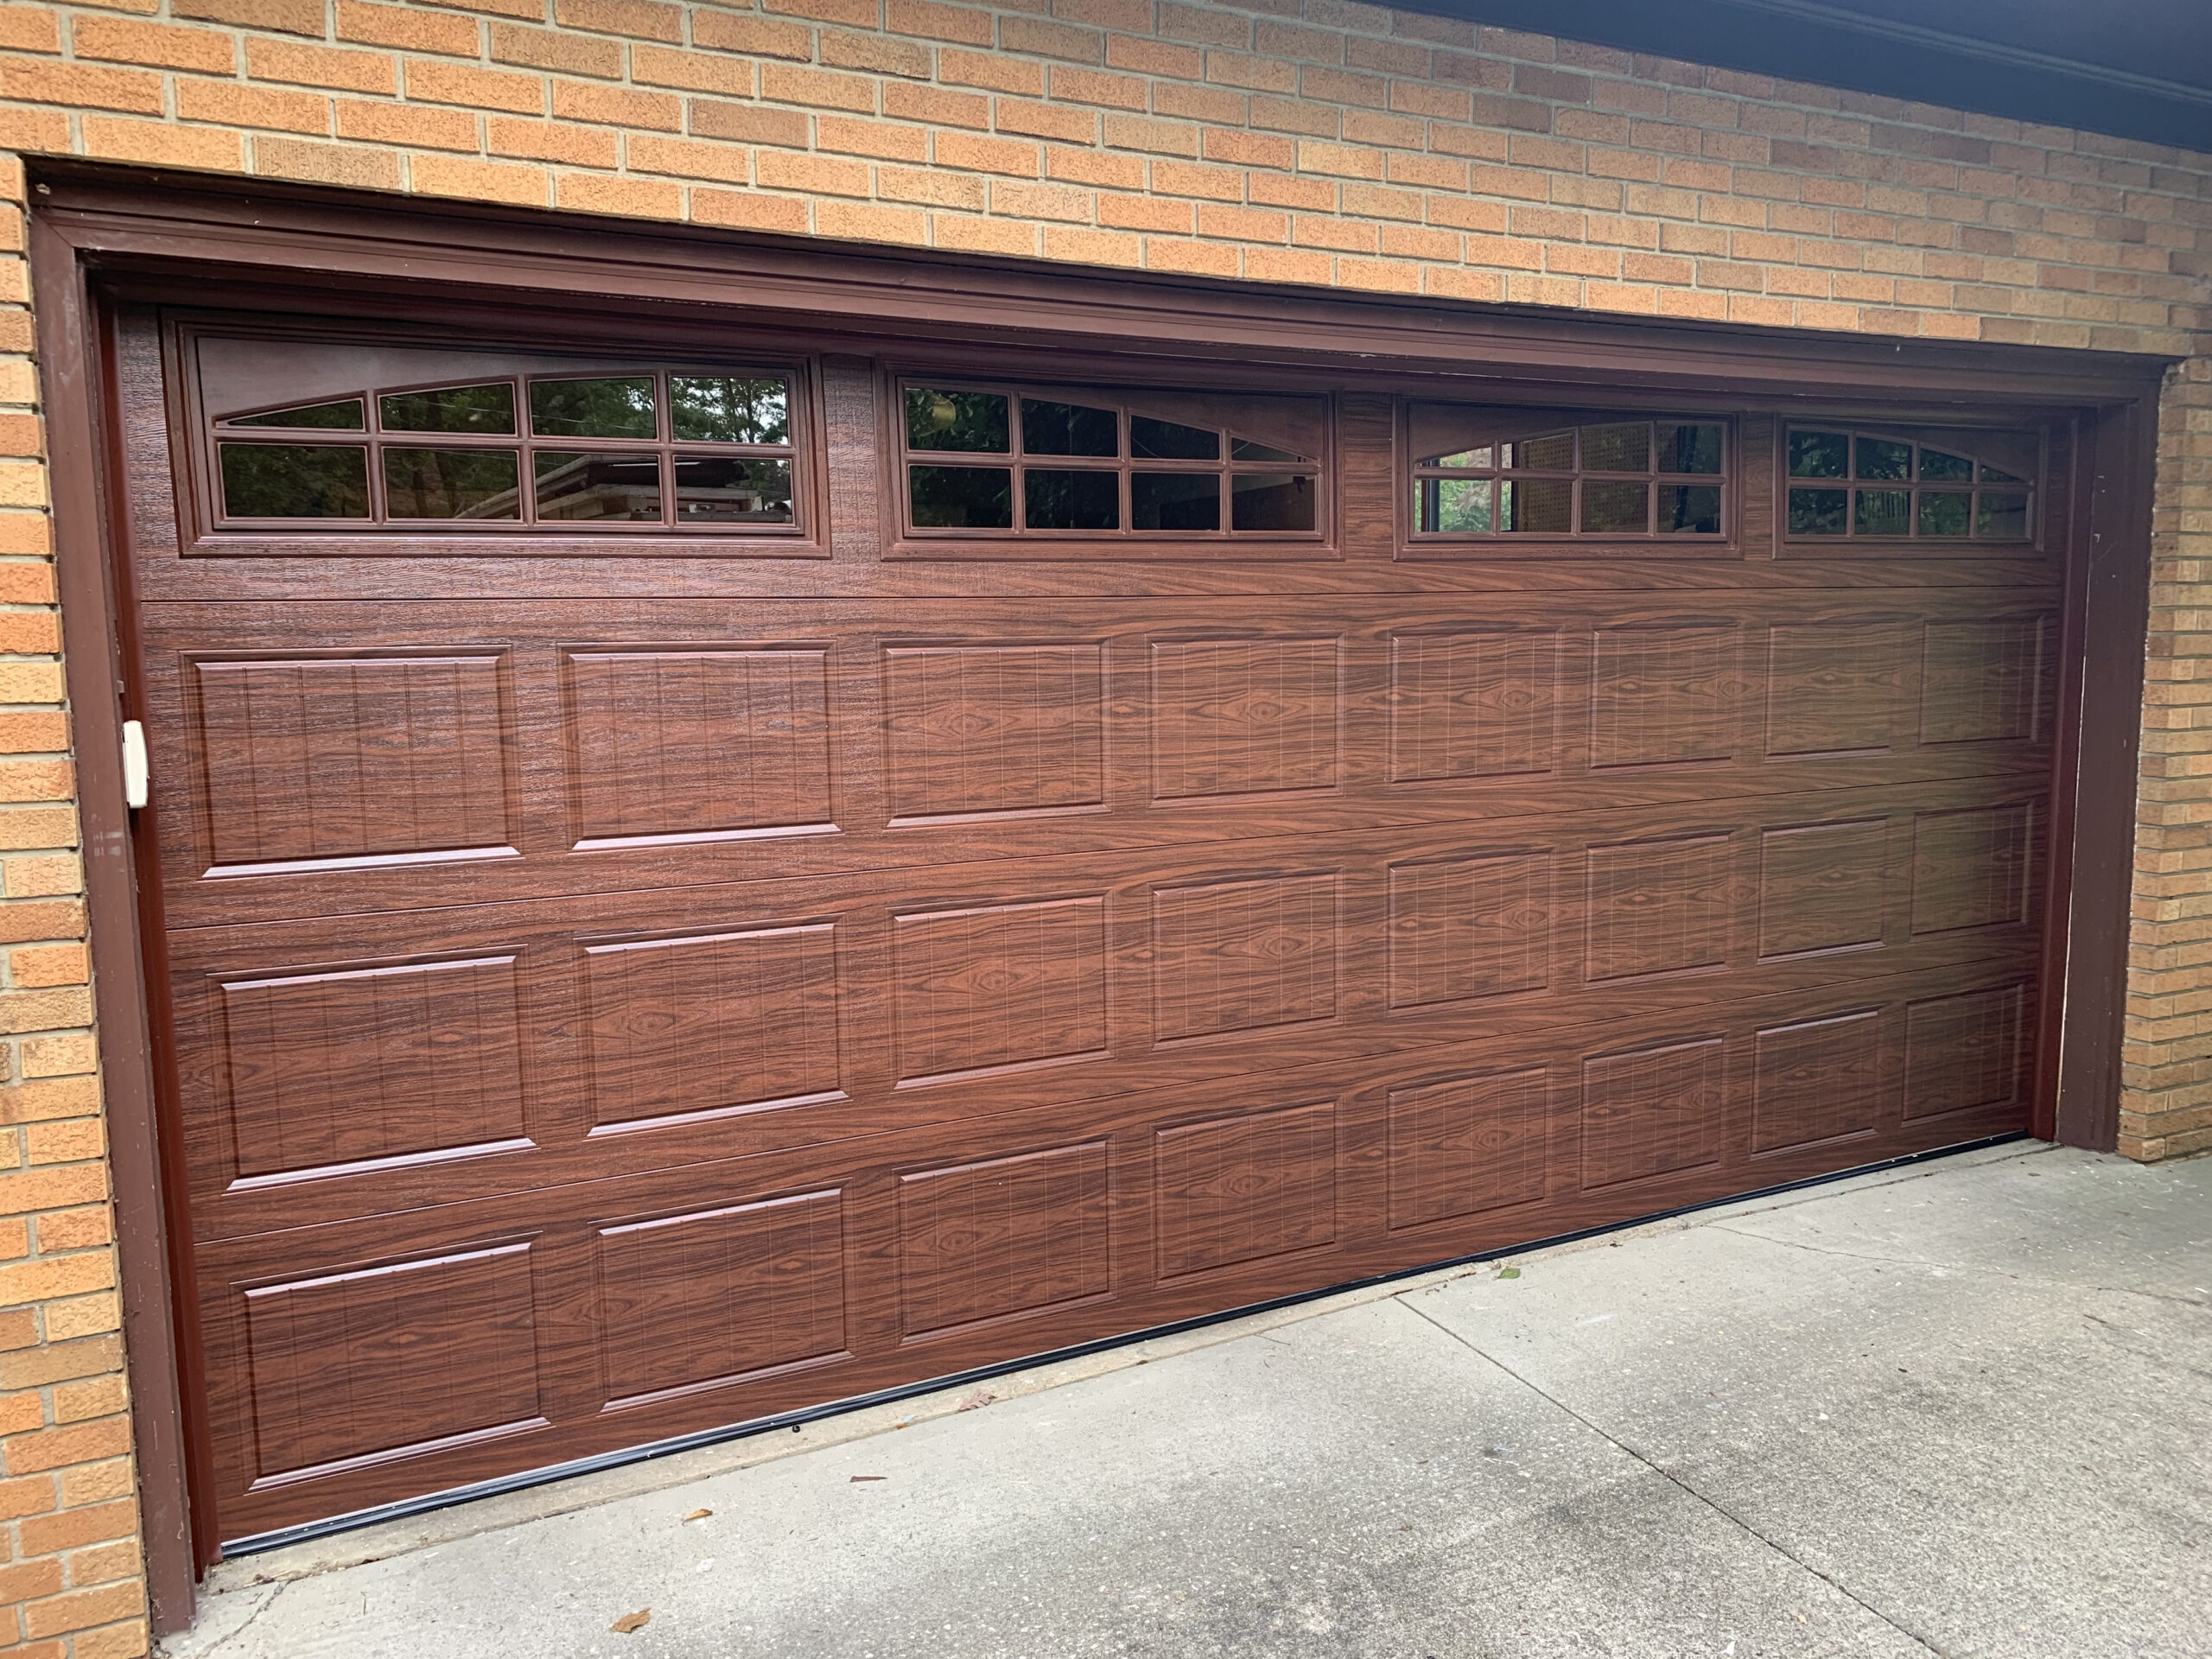 New replacement garage door installation by Kent Garage Doors